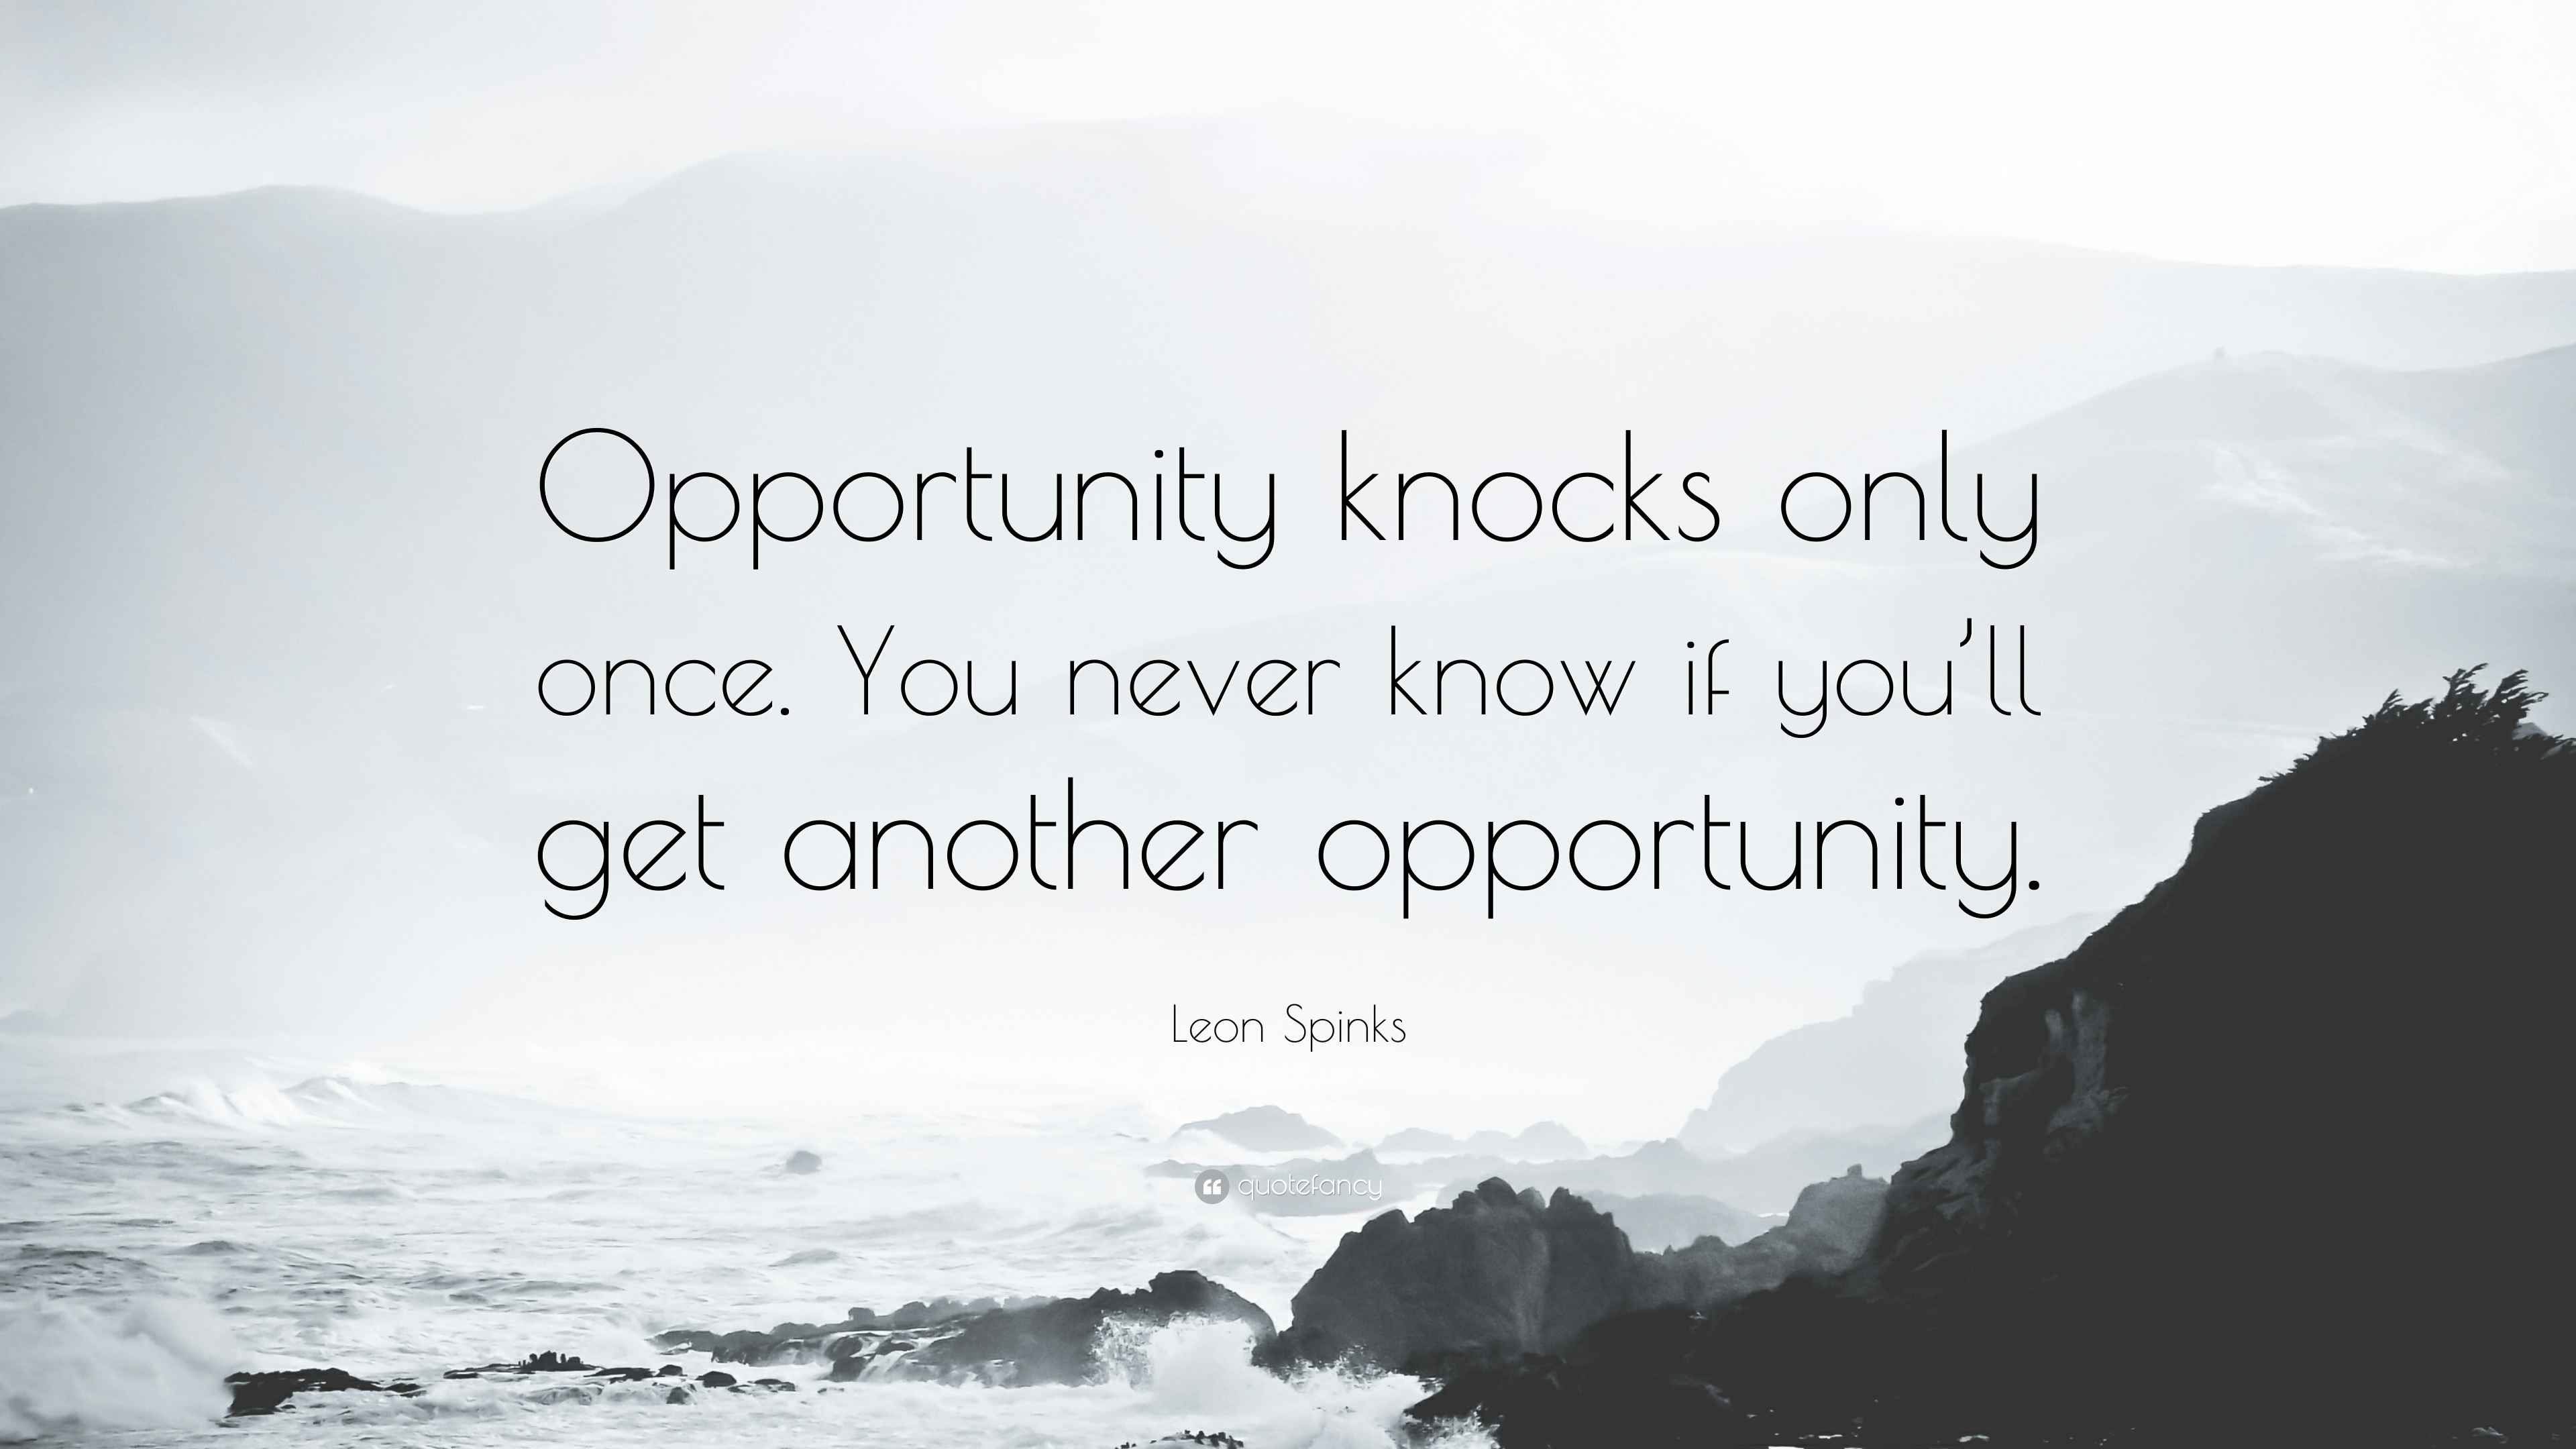 essay on opportunity knocks the door once Opportunity knocks but once essay writer opportunity knocks only once, proverb stories data are facts or pieces of an opportunity knocks the door but once.